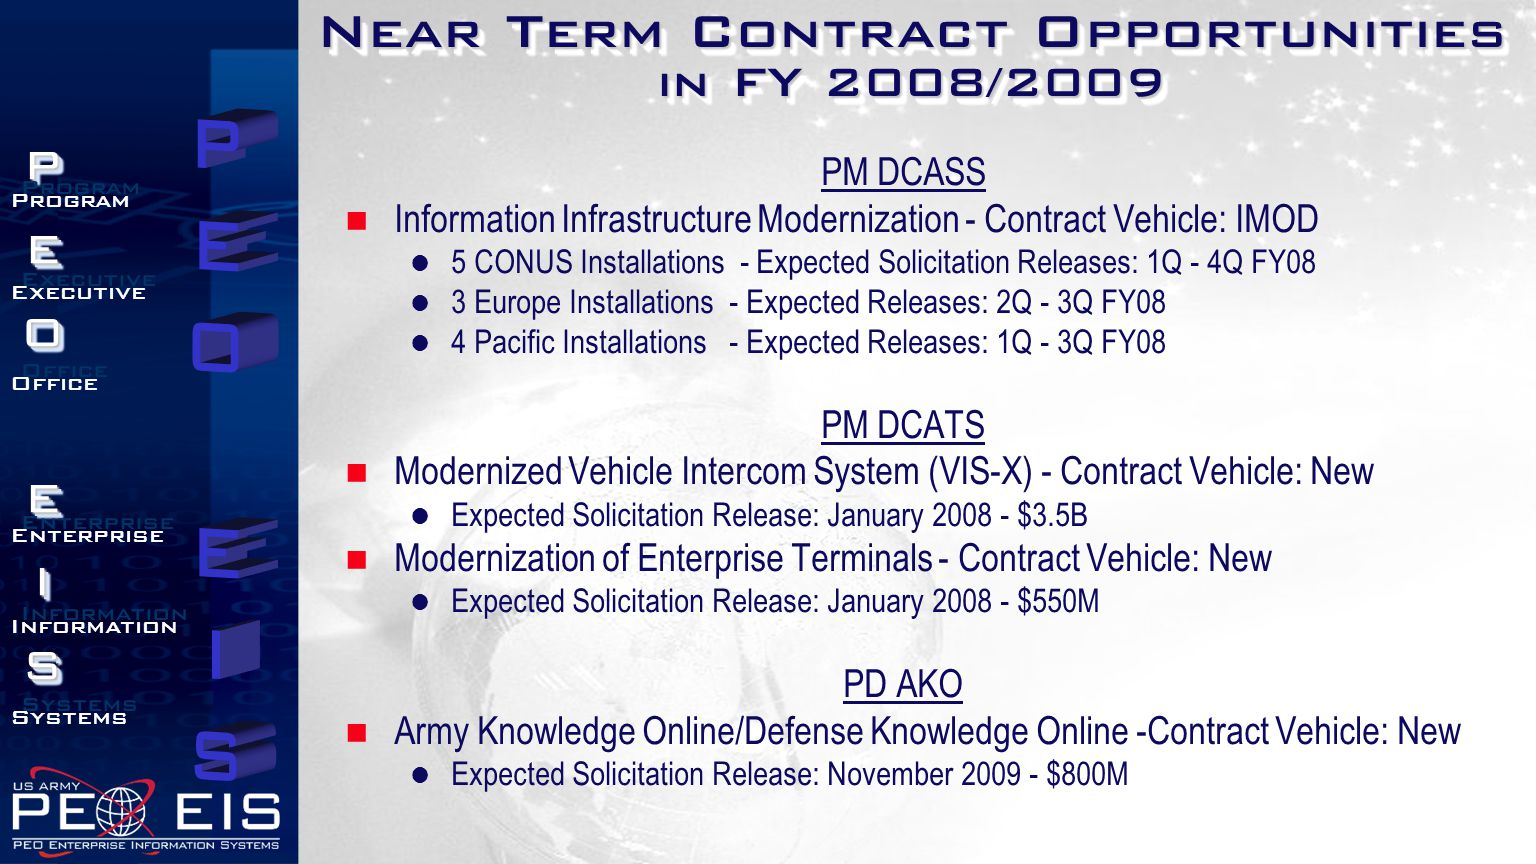 Near Term Contract Opportunities in FY 2008/2009